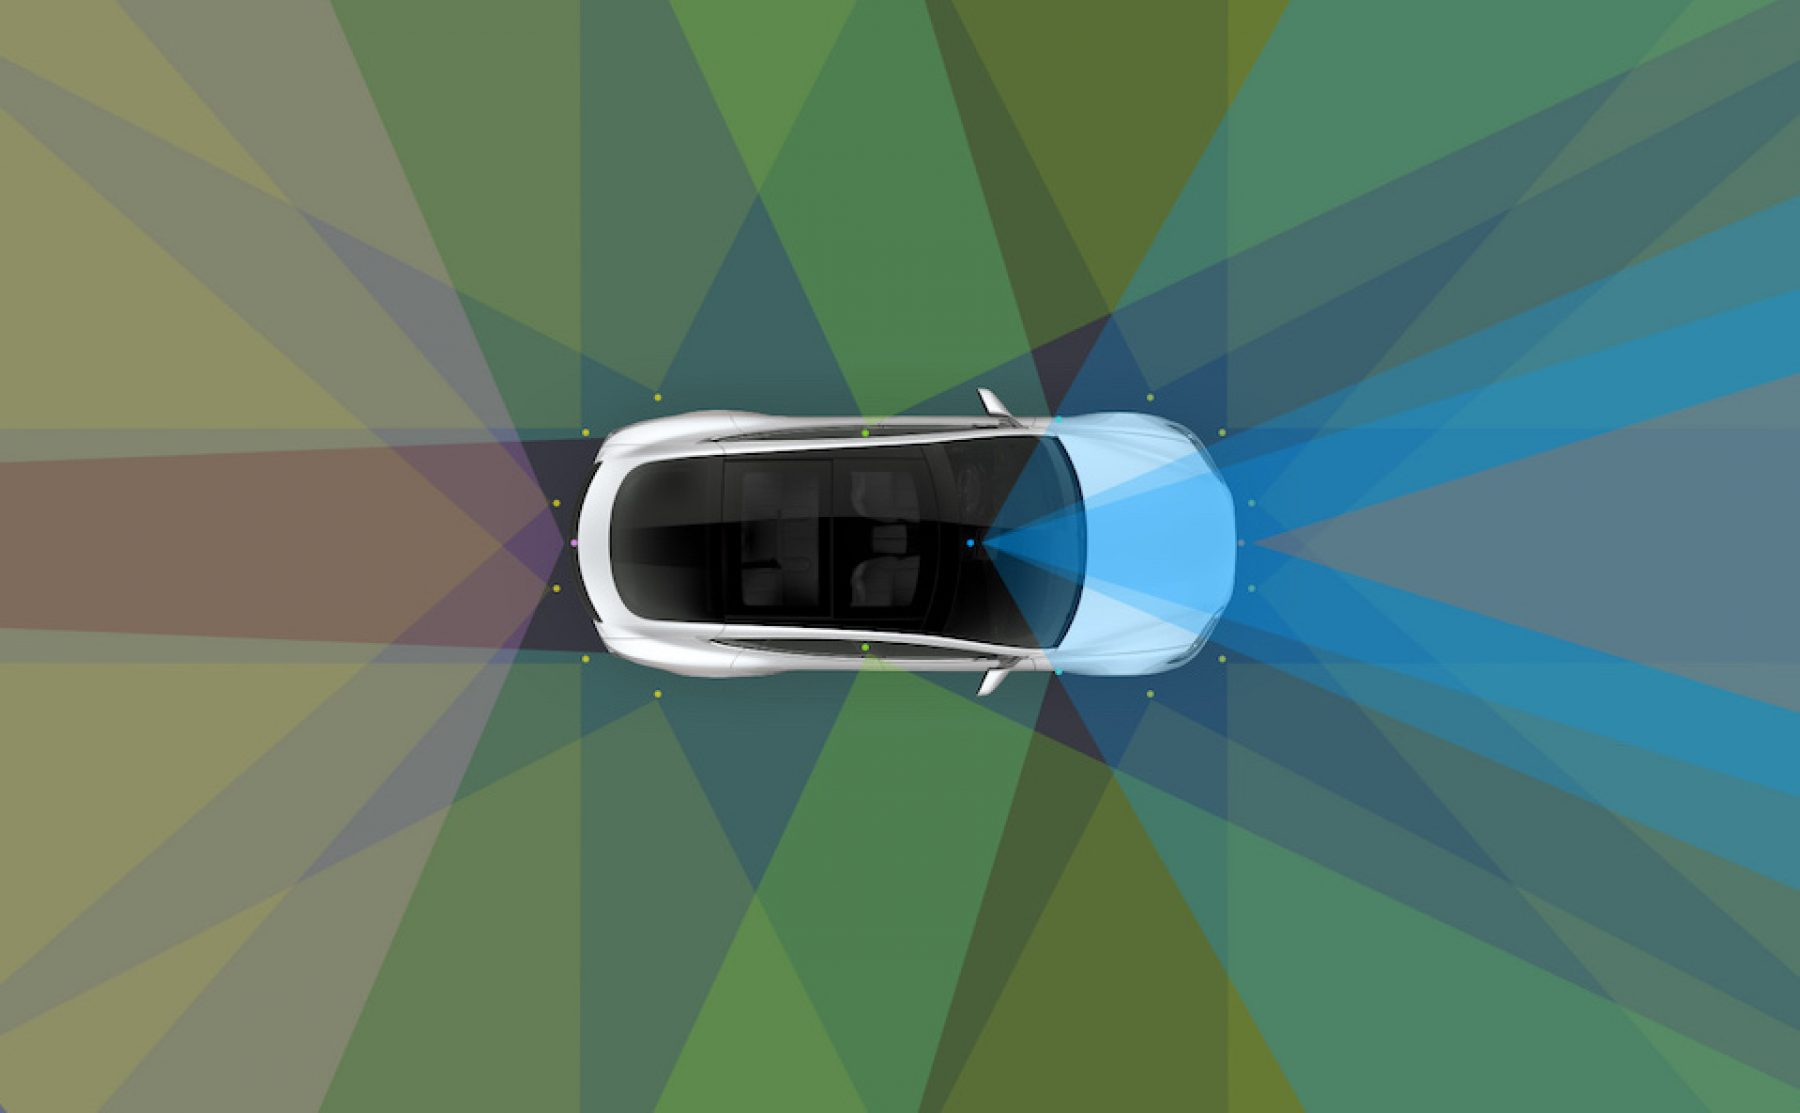 Wrongly charged? Defusing the electric car myths - Positive